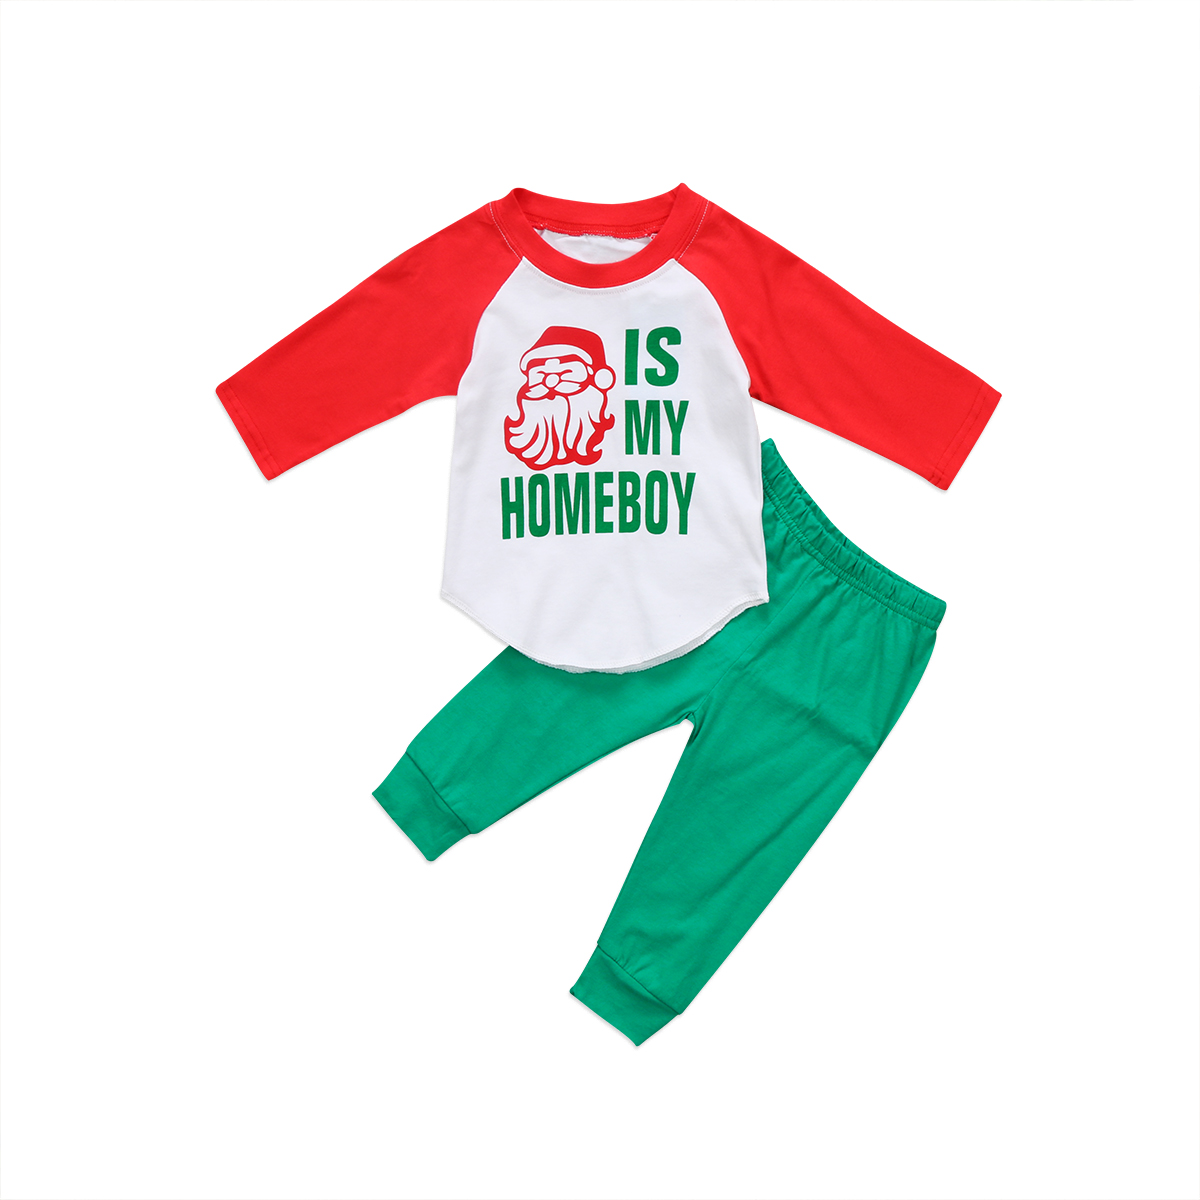 2Pcs Casual Santa Tops T-shirt Pants Outfits Set Toddler Kids Boys Christmas Clothes 1-6Y